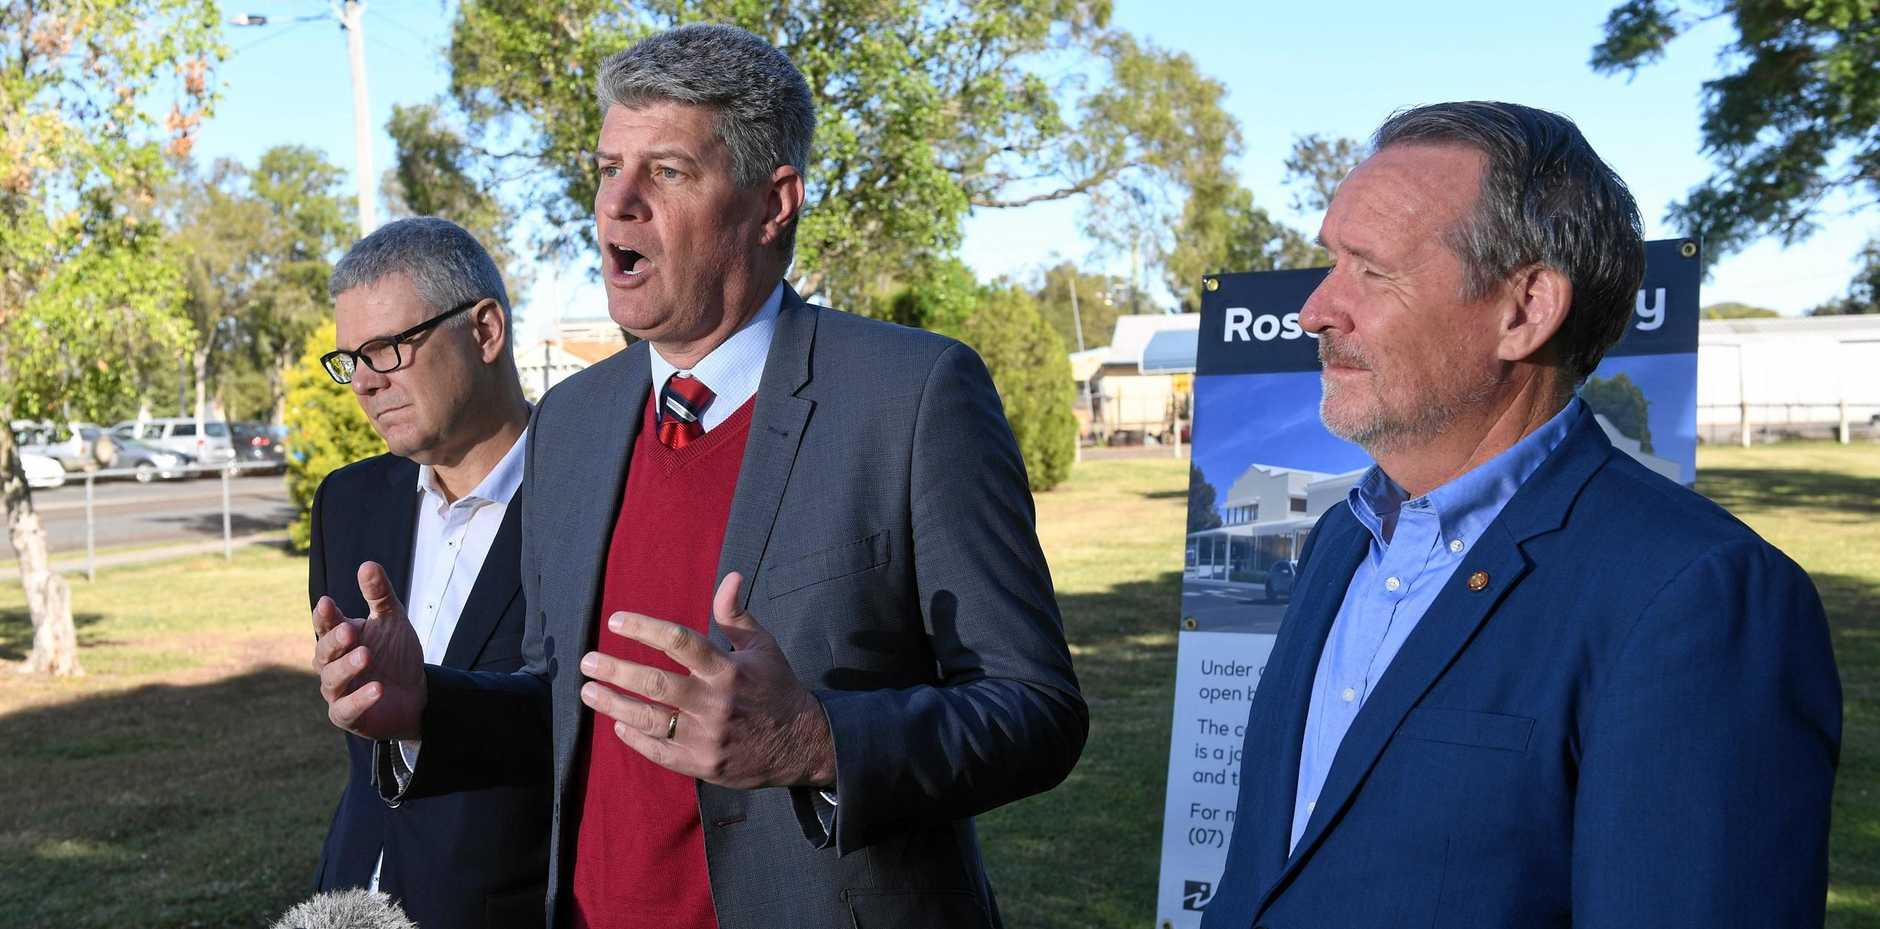 Local Government Minister Stirling Hinchcliffe, Ipswich City Council CEO David Farmer and Jim Madden MP.